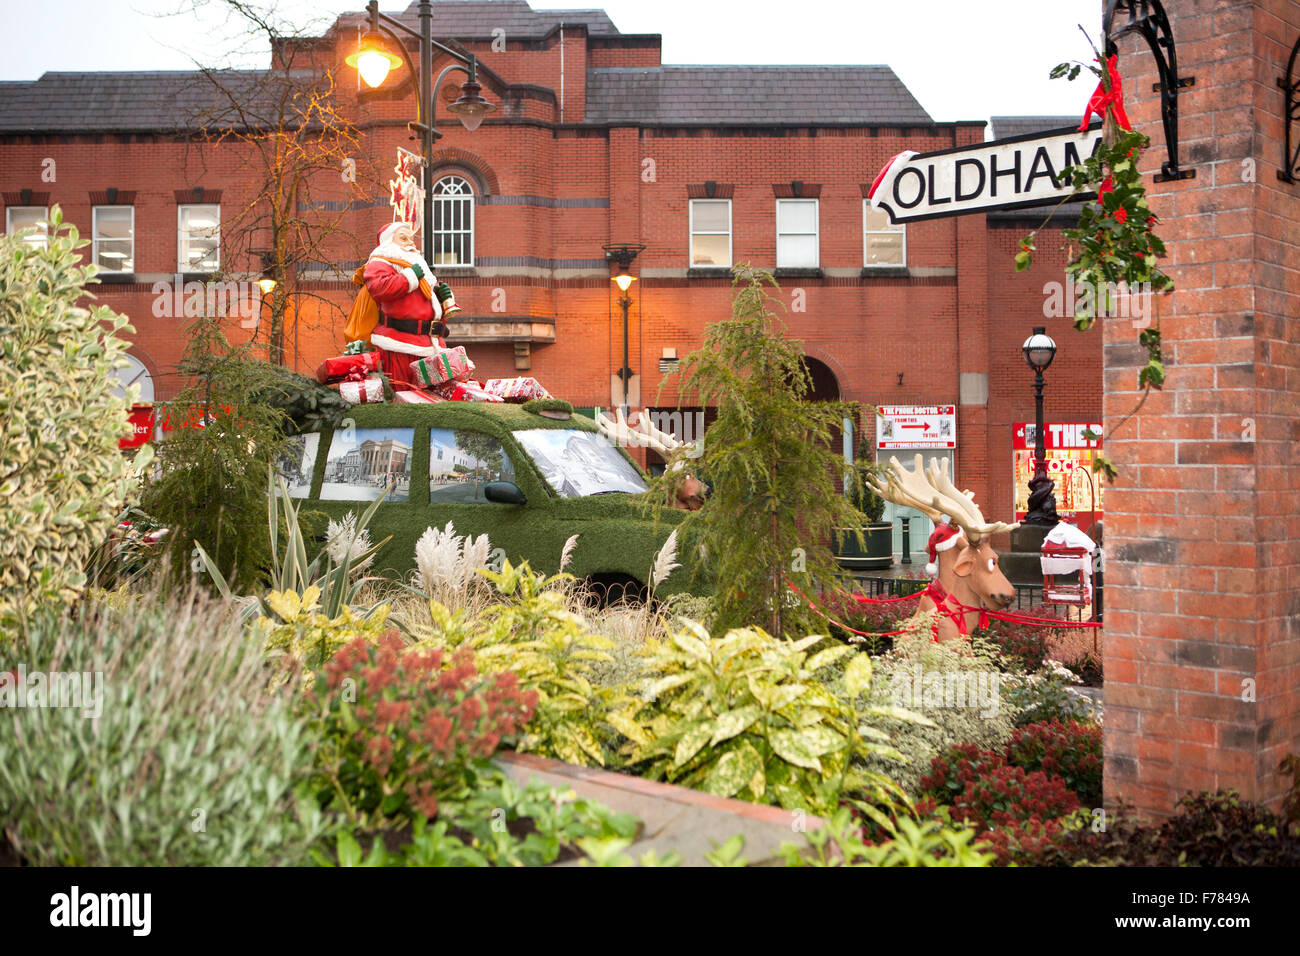 Oldham, Manchester, UK  Christmas decorations central precinct, & Town square. - Stock Image